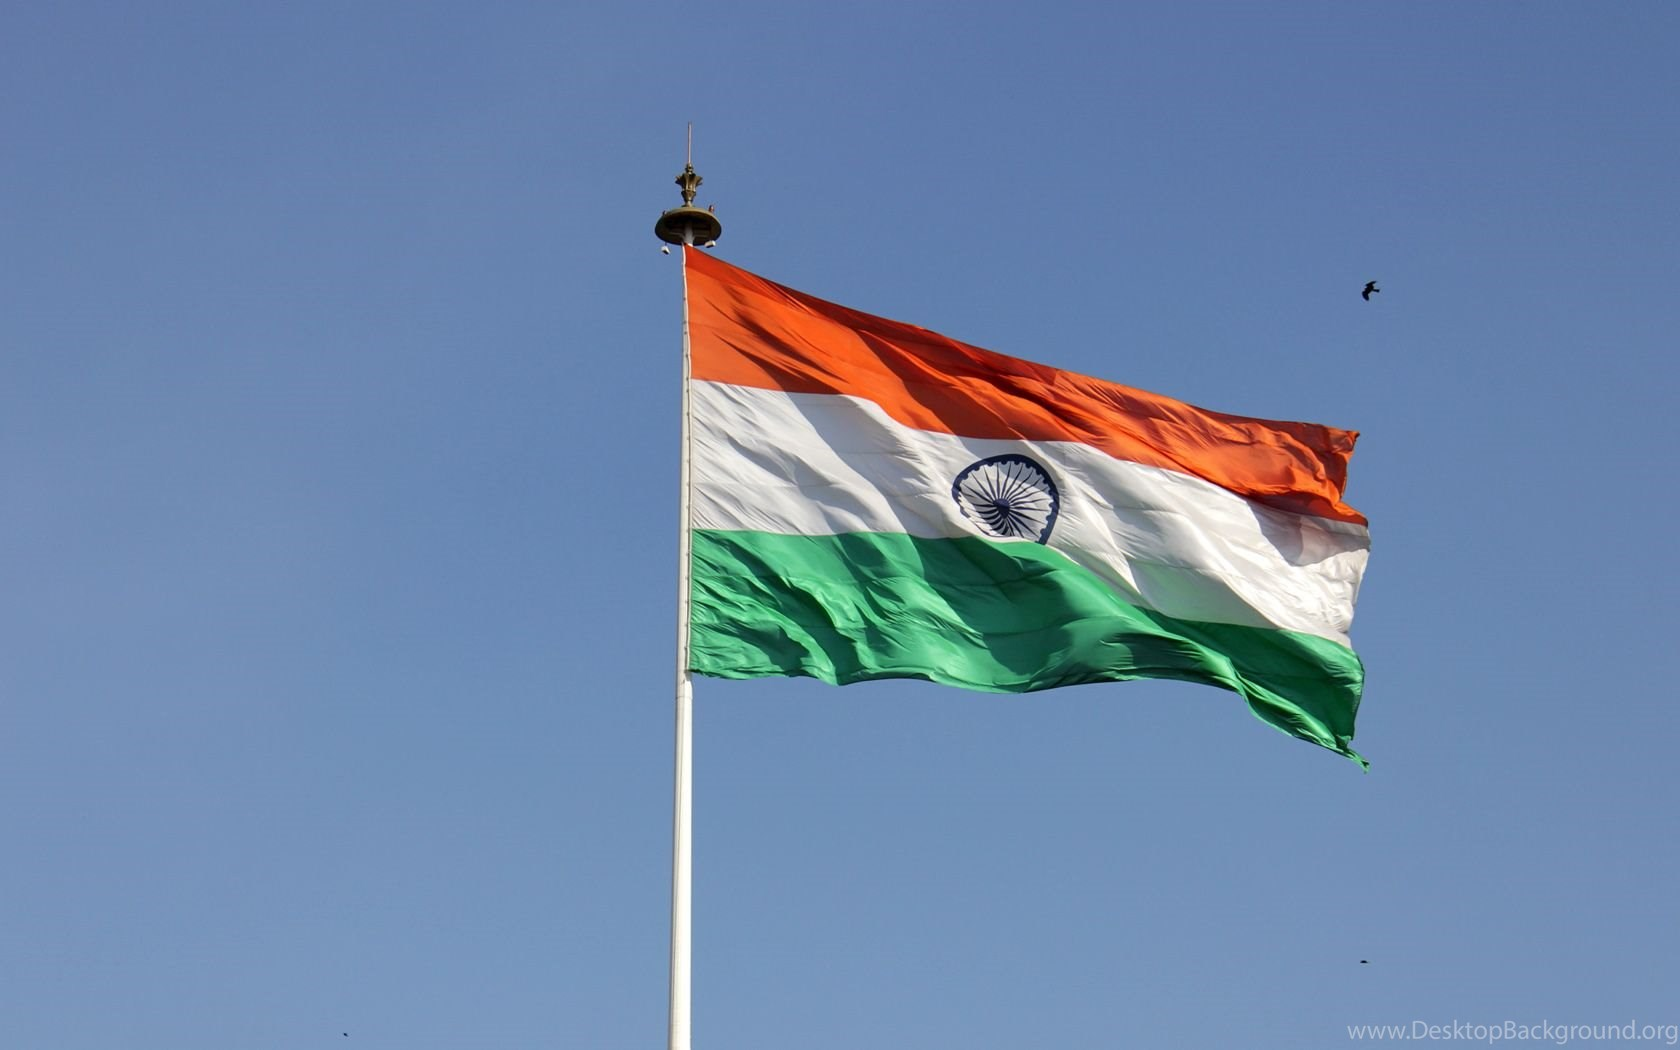 Clothe India Flag Hd: The Indian Flag Pics Hd For Fb Profile Picture Desktop